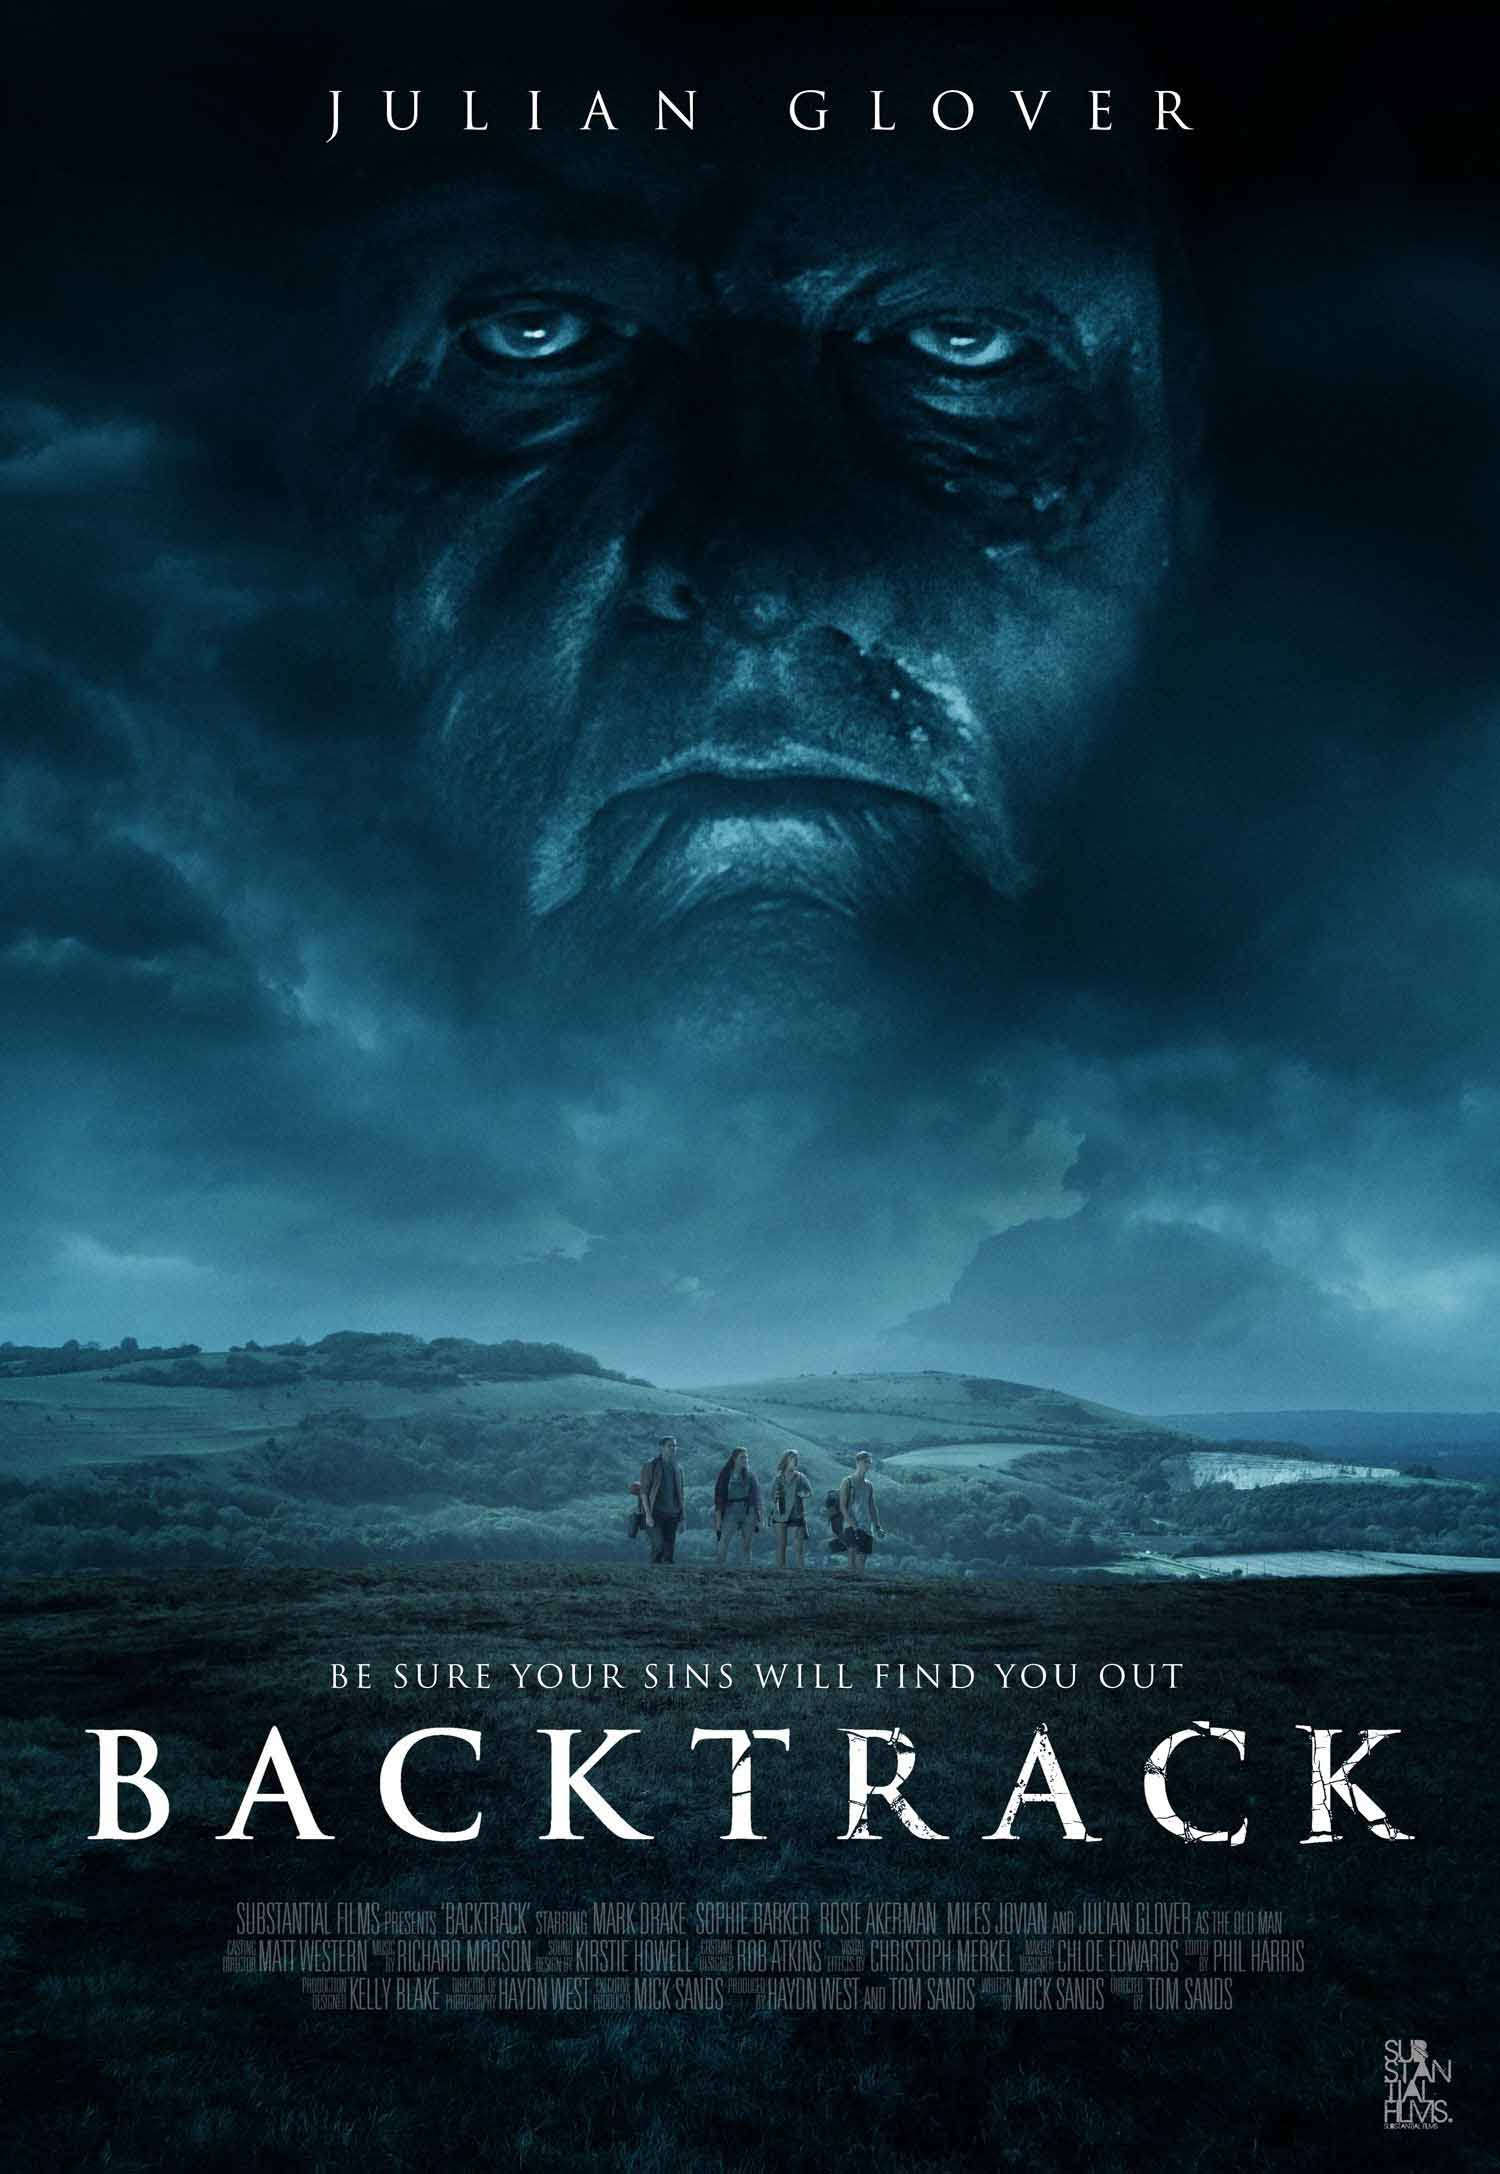 Backtrack (2014) - Movie